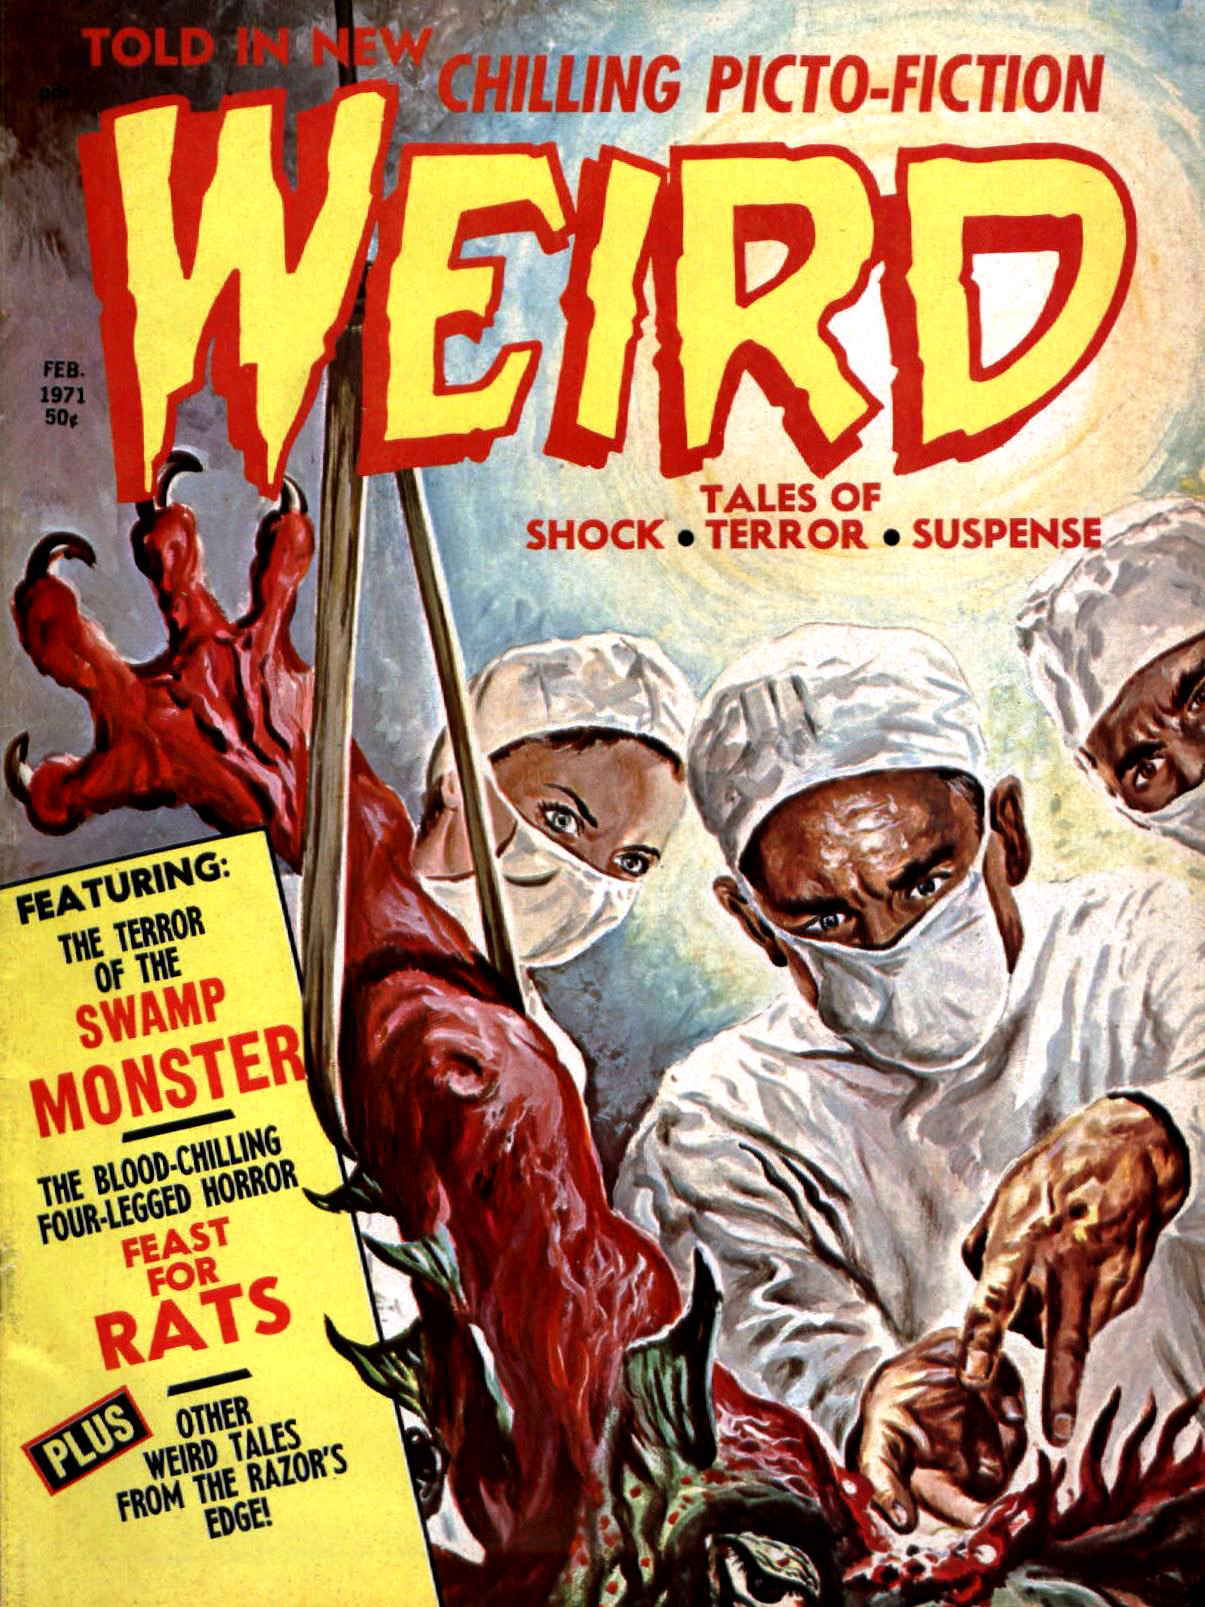 Weird Vol. 05 #1 (Eerie Publications, 1971)